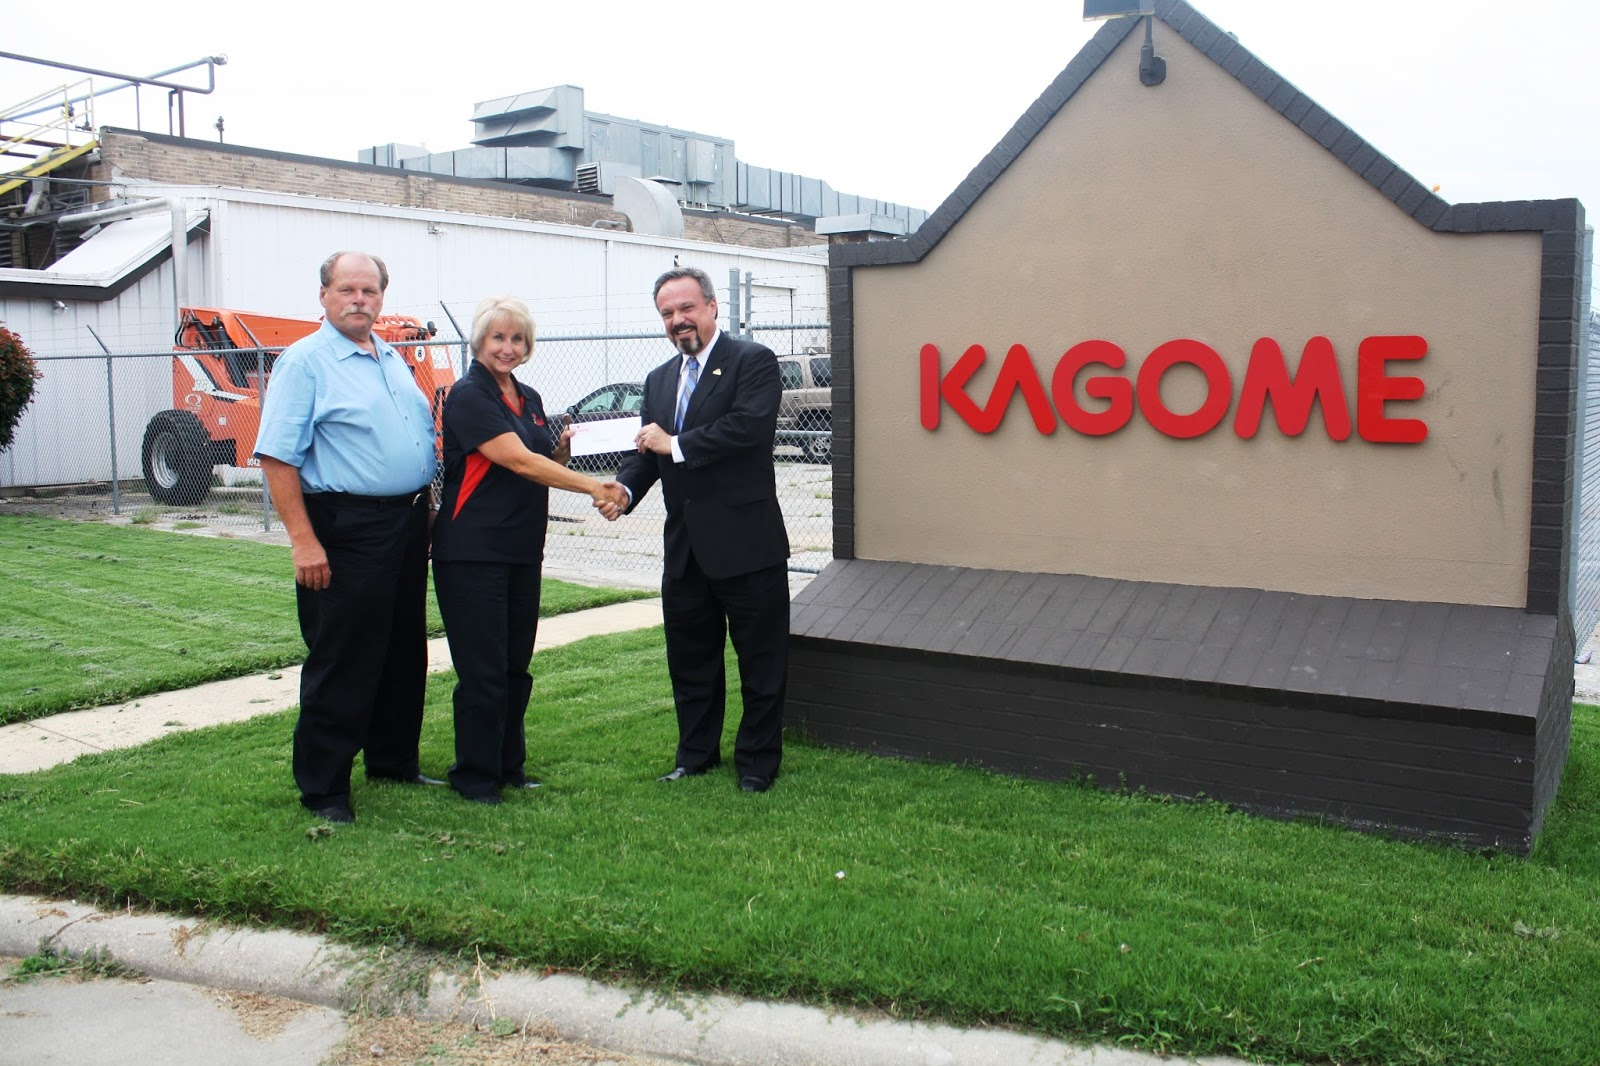 Osceolasouth mississippi county chamber of commerce news anc kagome creative foods in osceola donates 5000 to the newly reinstated work programa program designed to prepare under skilled unemployed residents for kristyandbryce Image collections